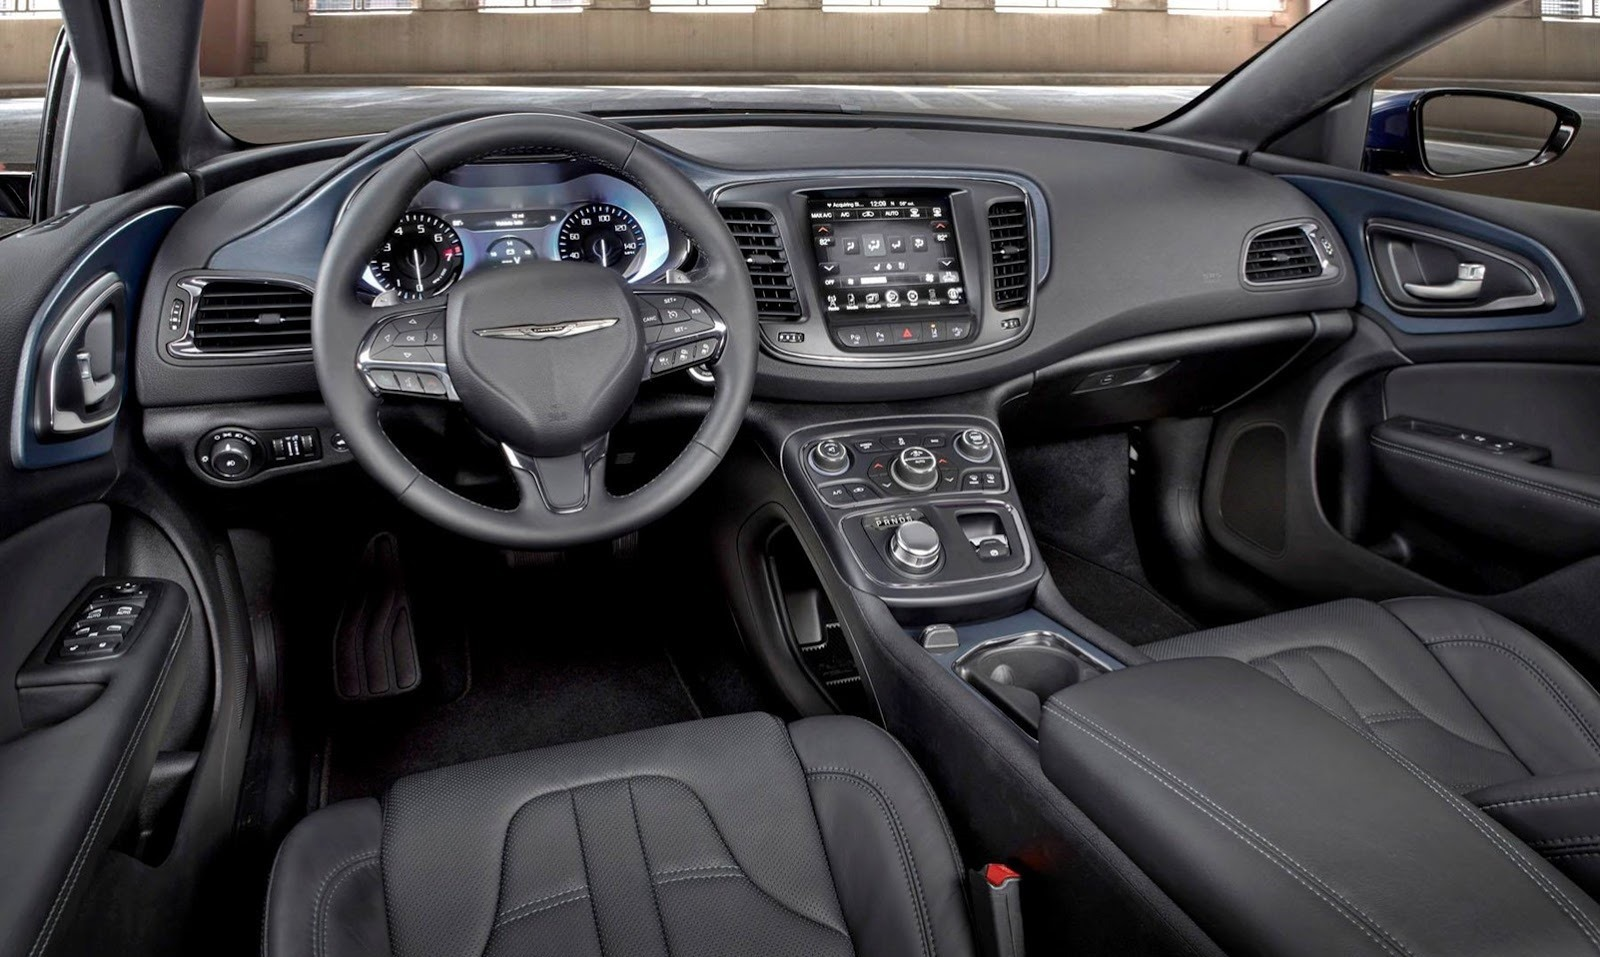 chrysler 300 inside with 2015 Chrysler 200 21 on First Muscle Car likewise System in addition 4315070247 together with 2911334 2004 Holden Rodeo DX RA For Sale further 131786729465.